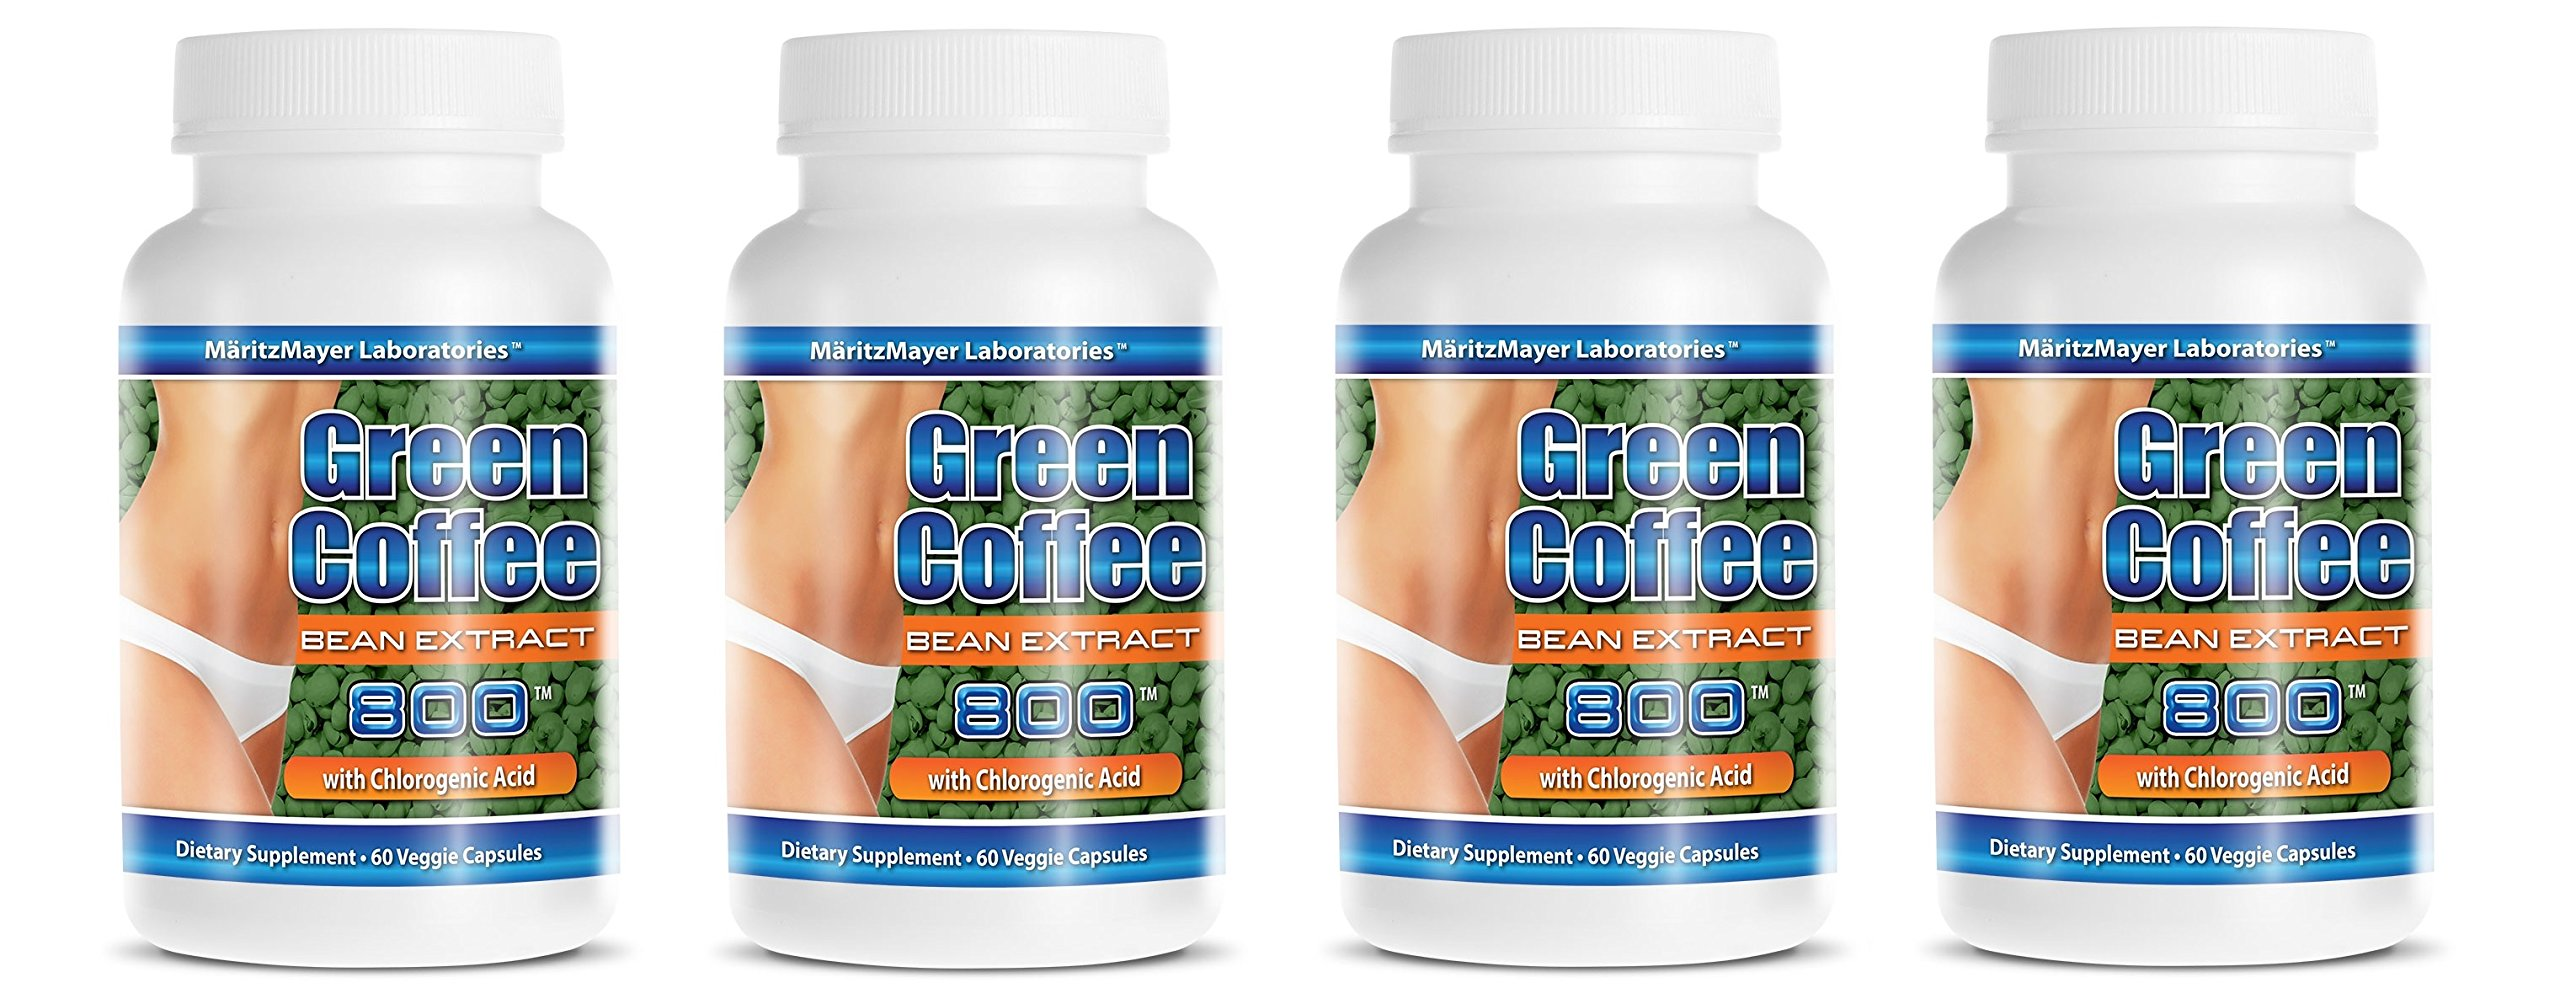 Pure Green Coffee Extract 800 mg Diet Weight Loss Pill 60 Capsules Per Bottle (4 Bottles)